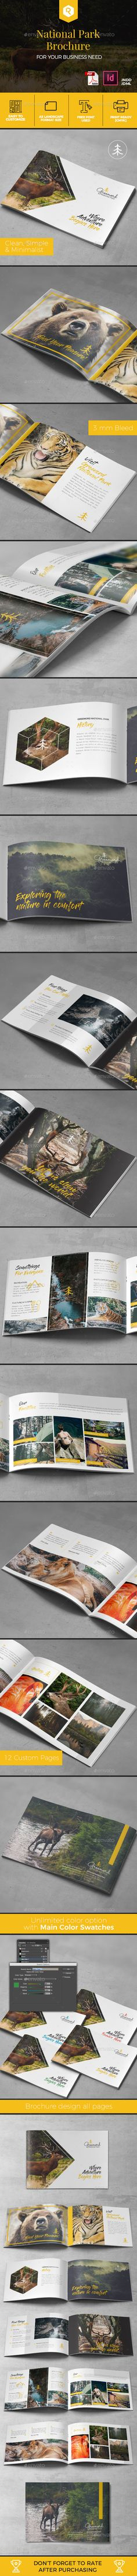 A5 National Park Brochure Template - Corporate Brochures Download here : https://graphicriver.net/item/a5-national-park-brochure-template/19644284?s_rank=109&ref=Al-fatih